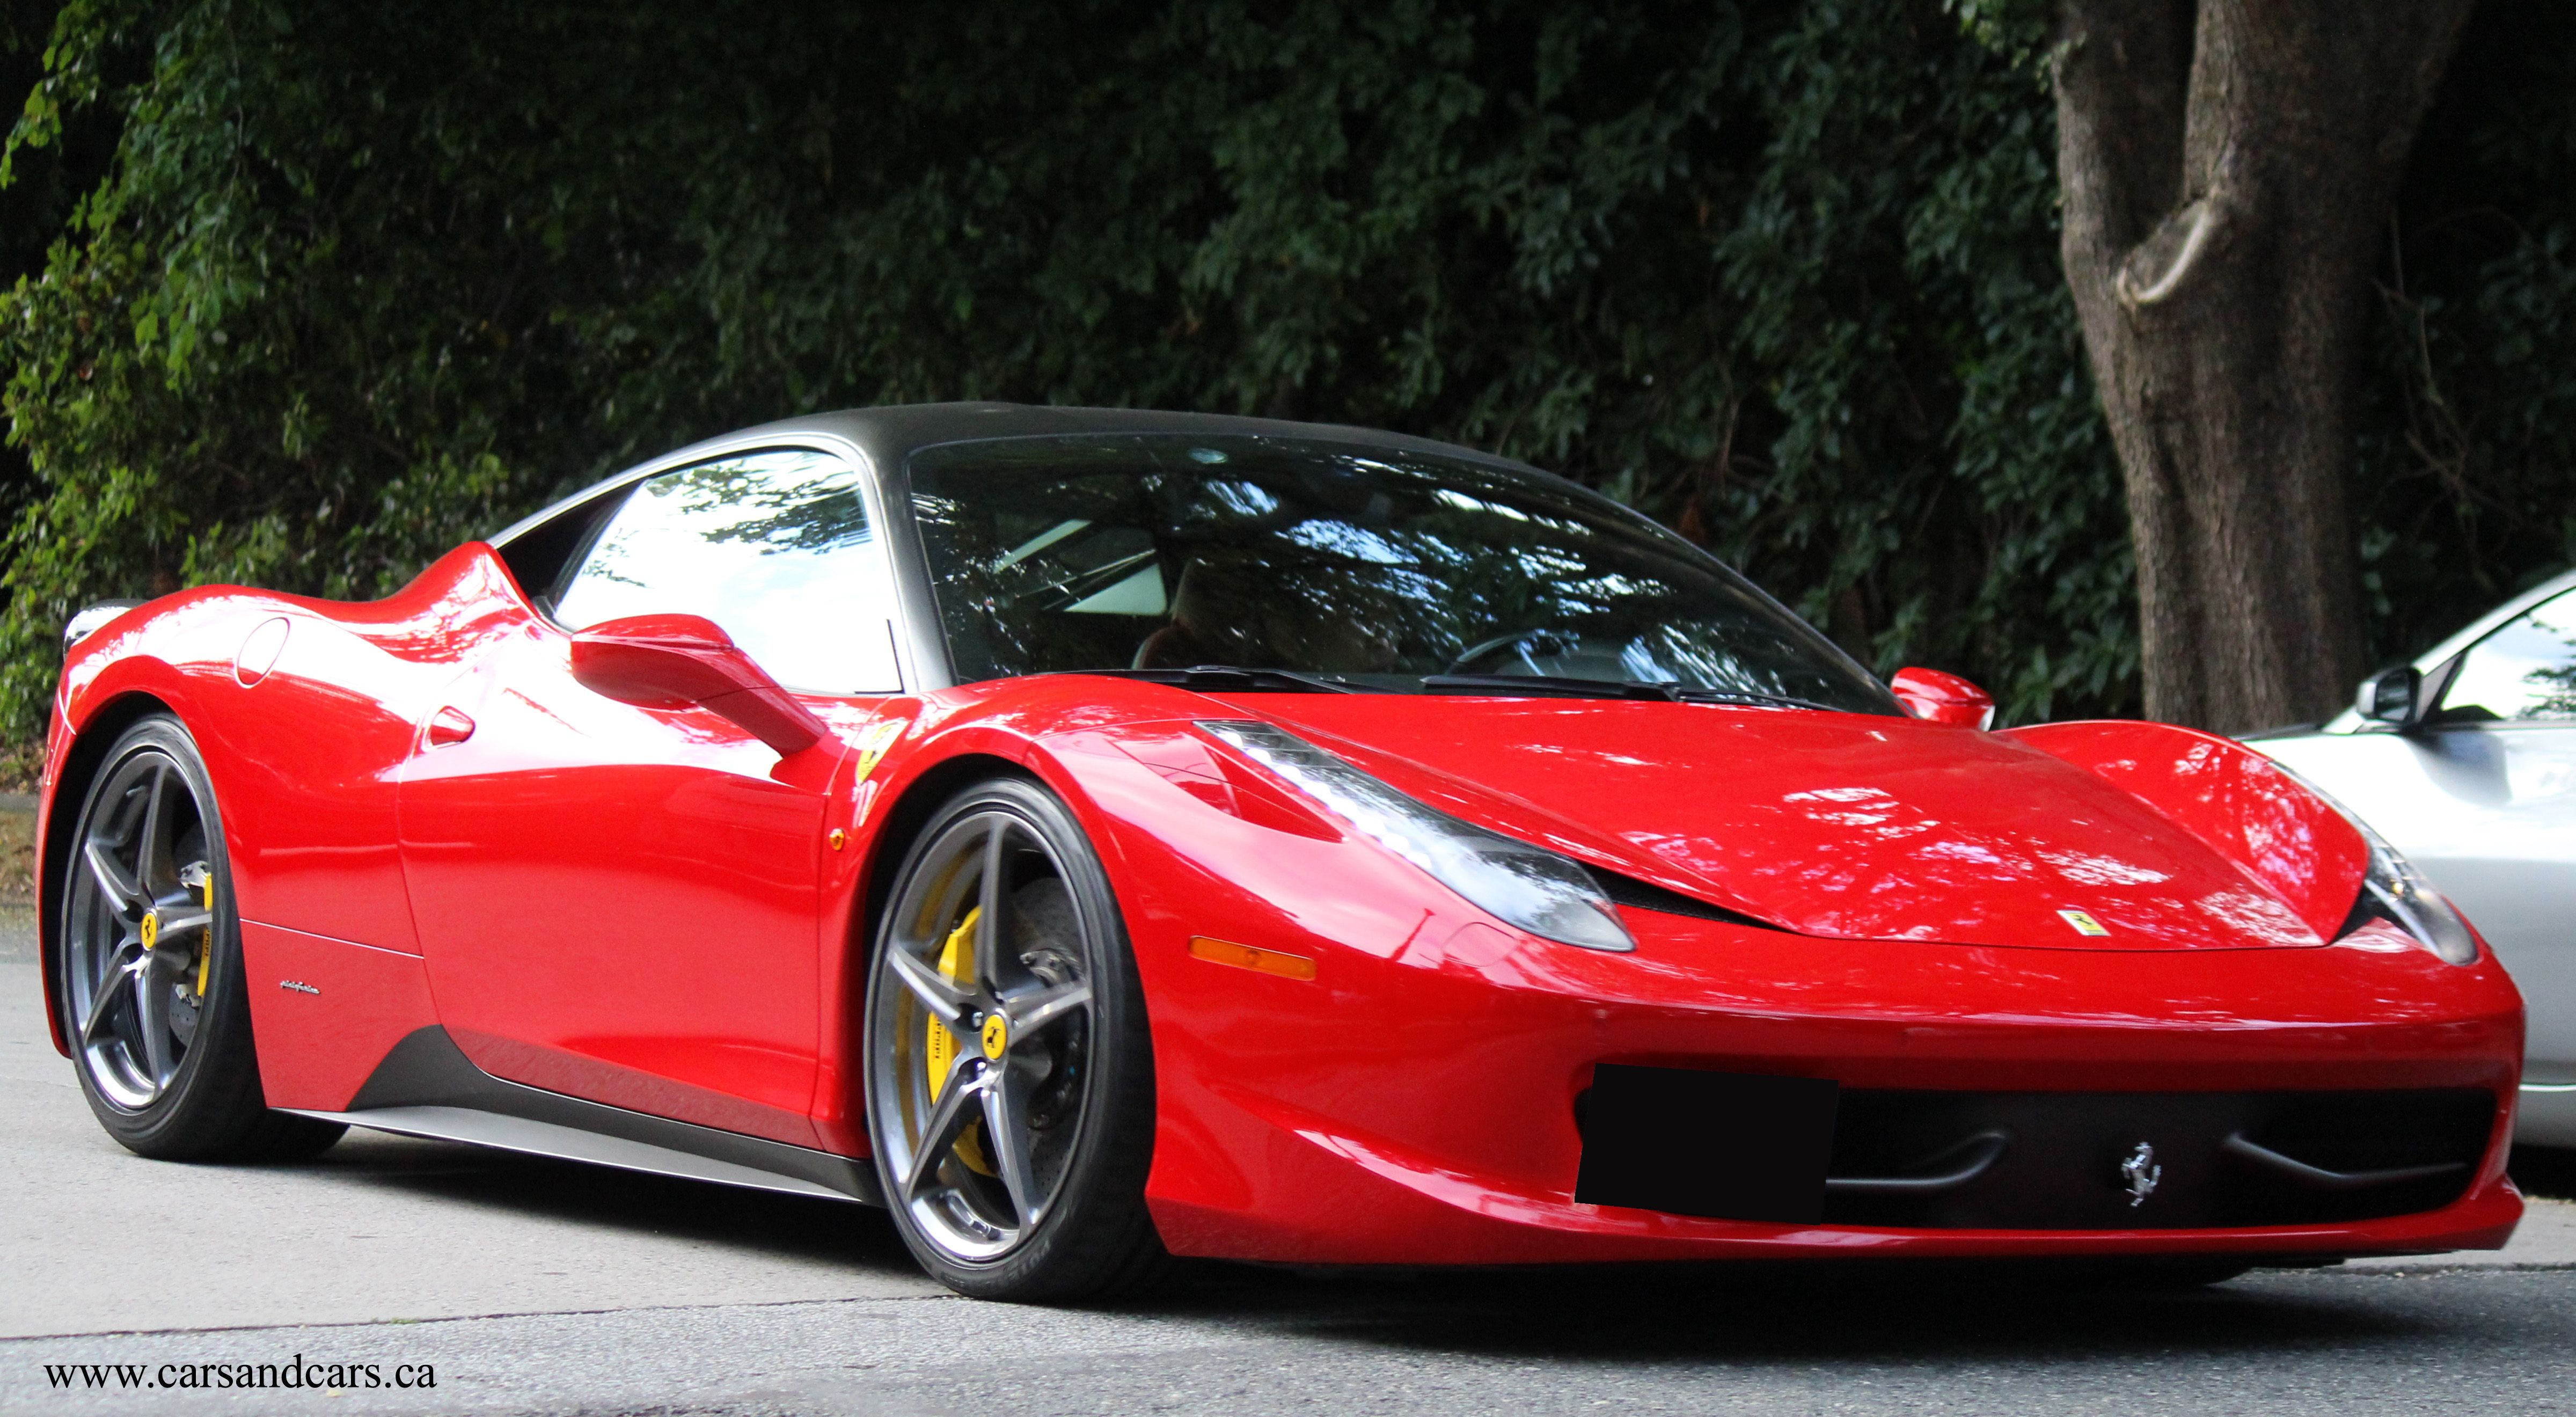 cars used of ferrari on for jamesedition kms scuderia marbella spain sale cheap spider in